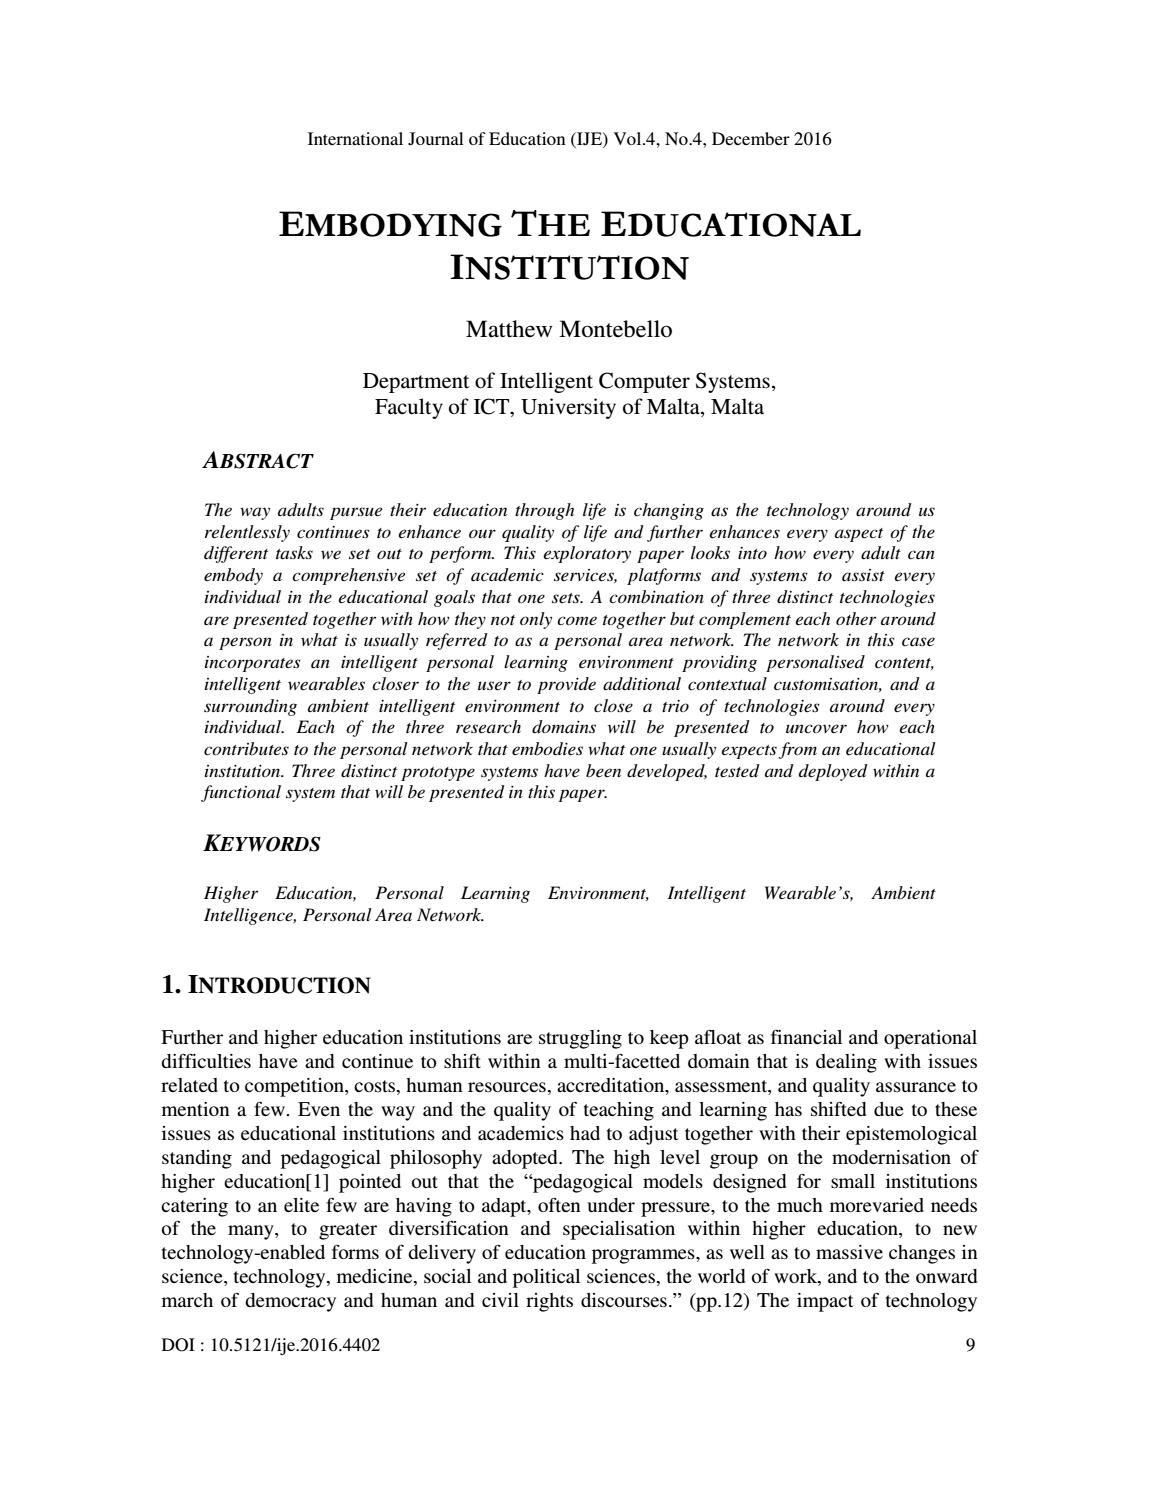 Embodying the Educational Institution by ijejournal - issuu